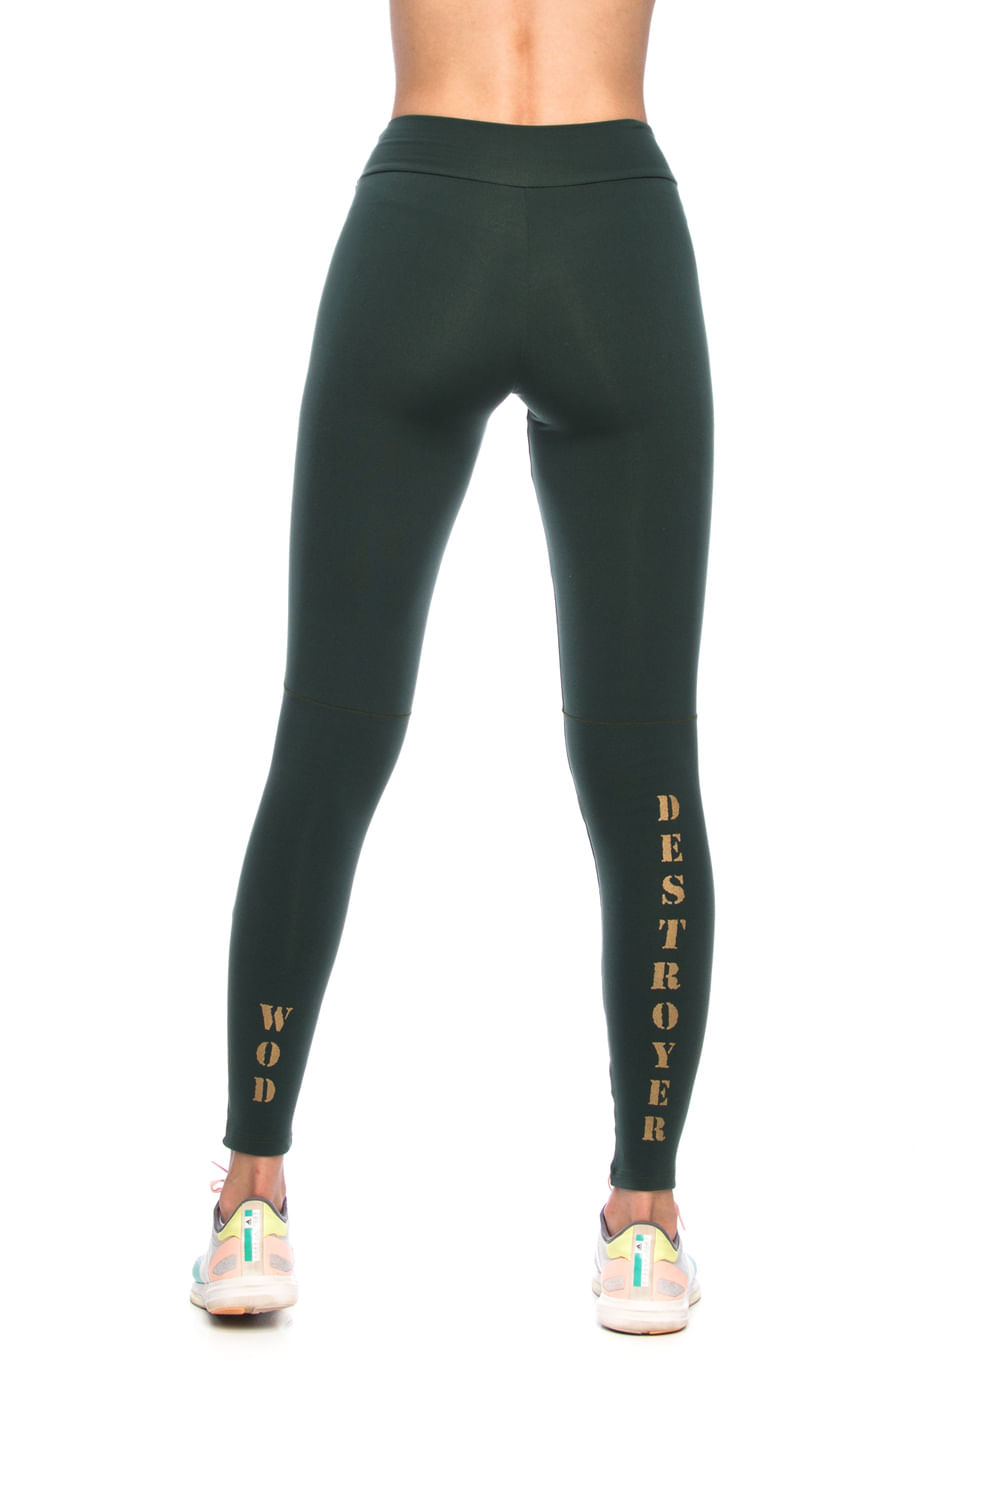 legging-fitness-supplex-crossfit-moda-academia-wod--6-